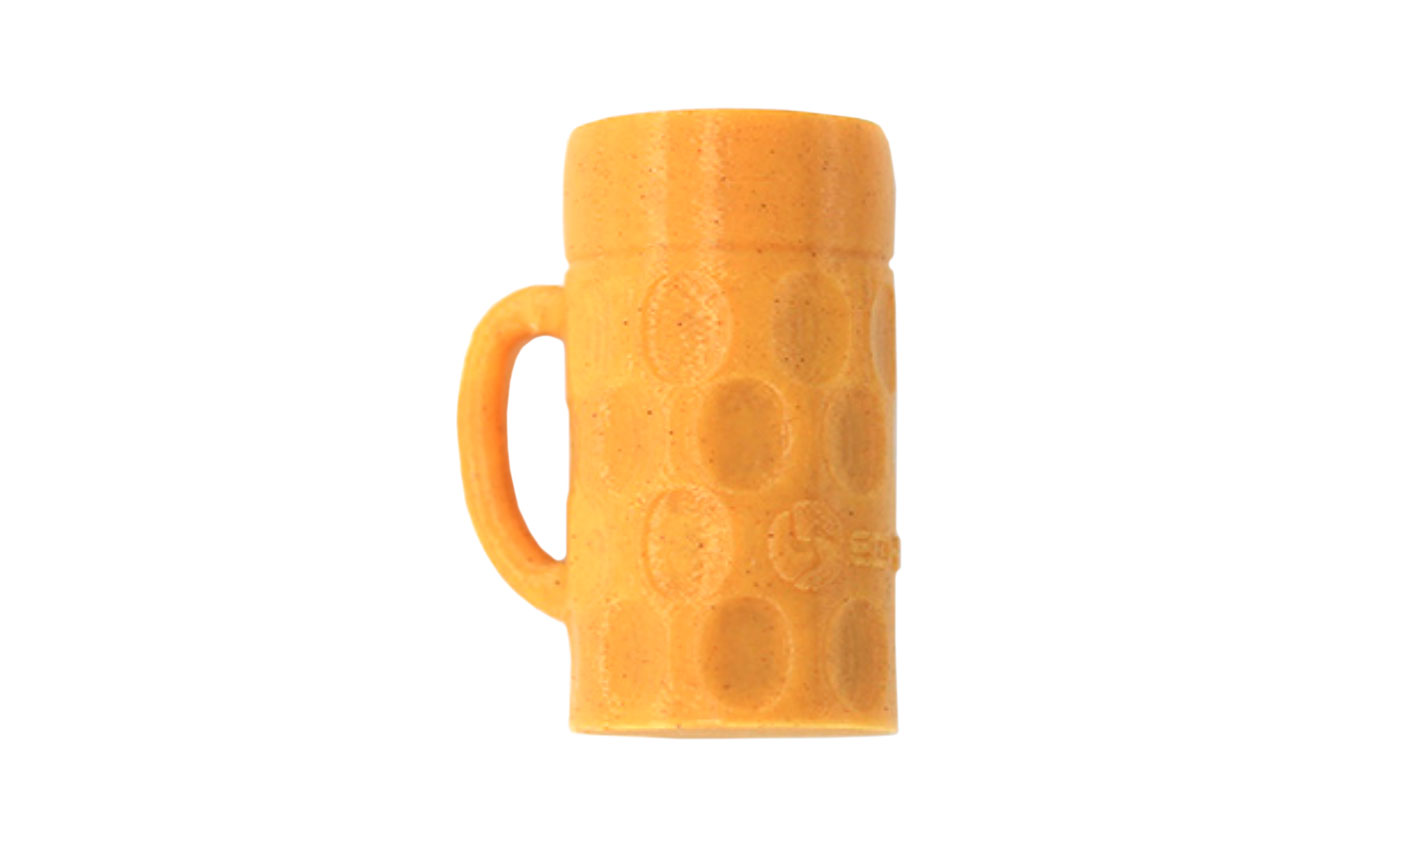 Beer mug printed with the Buzzed filament.